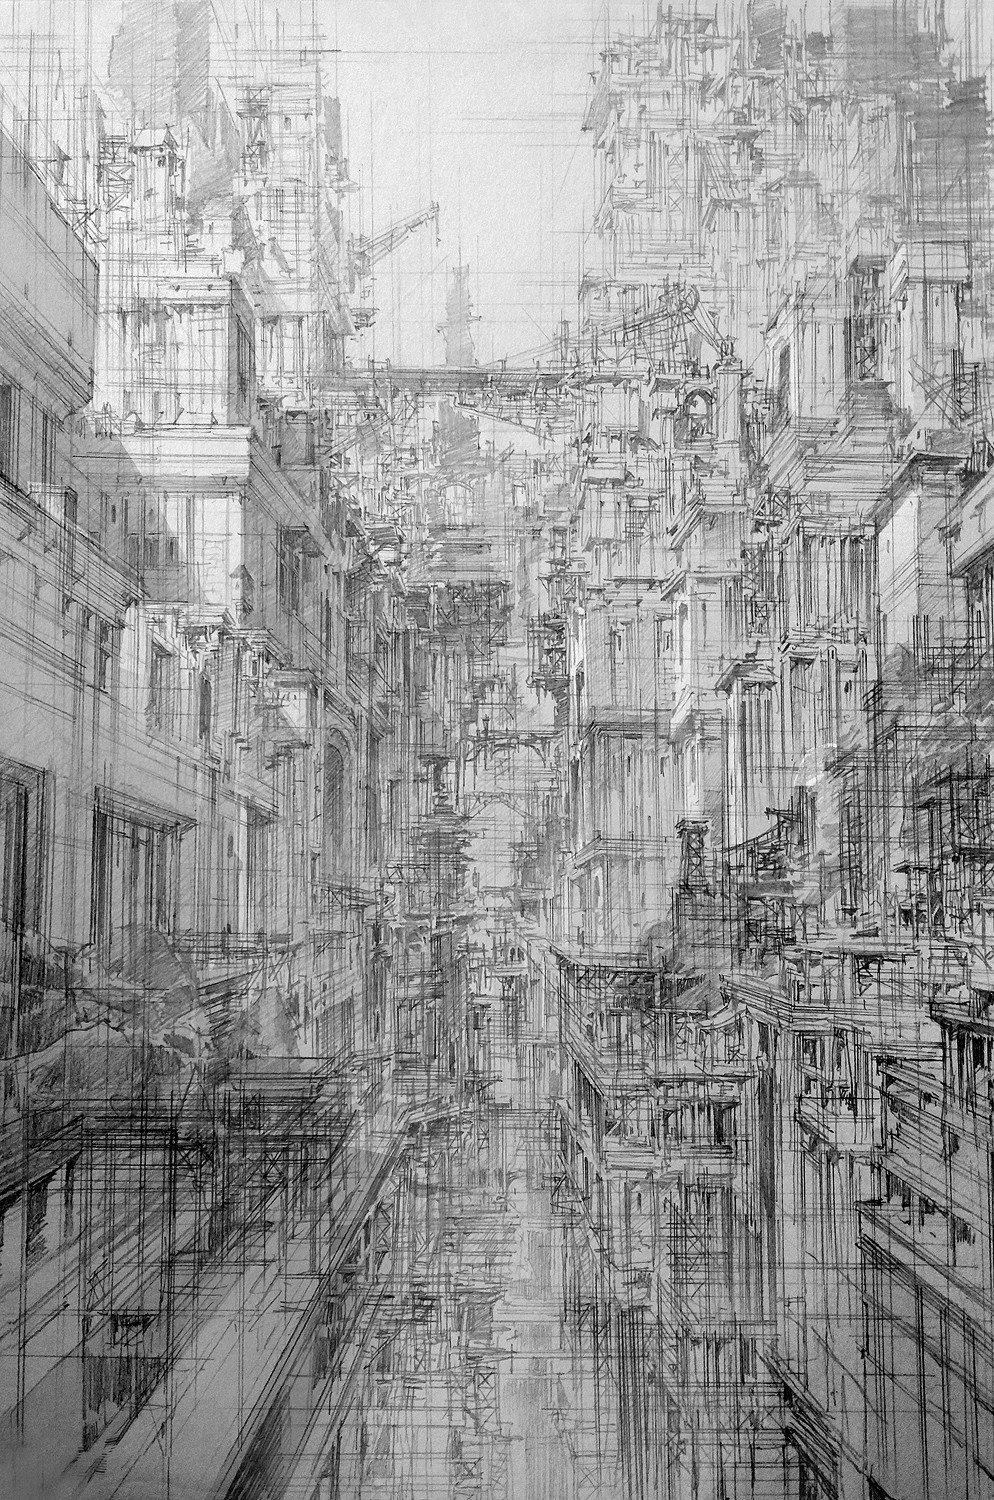 Infinite Cities Take Shape in Imagined Architectural Drawings by JaeCheol Park Artes & contextos jaecheol park 6